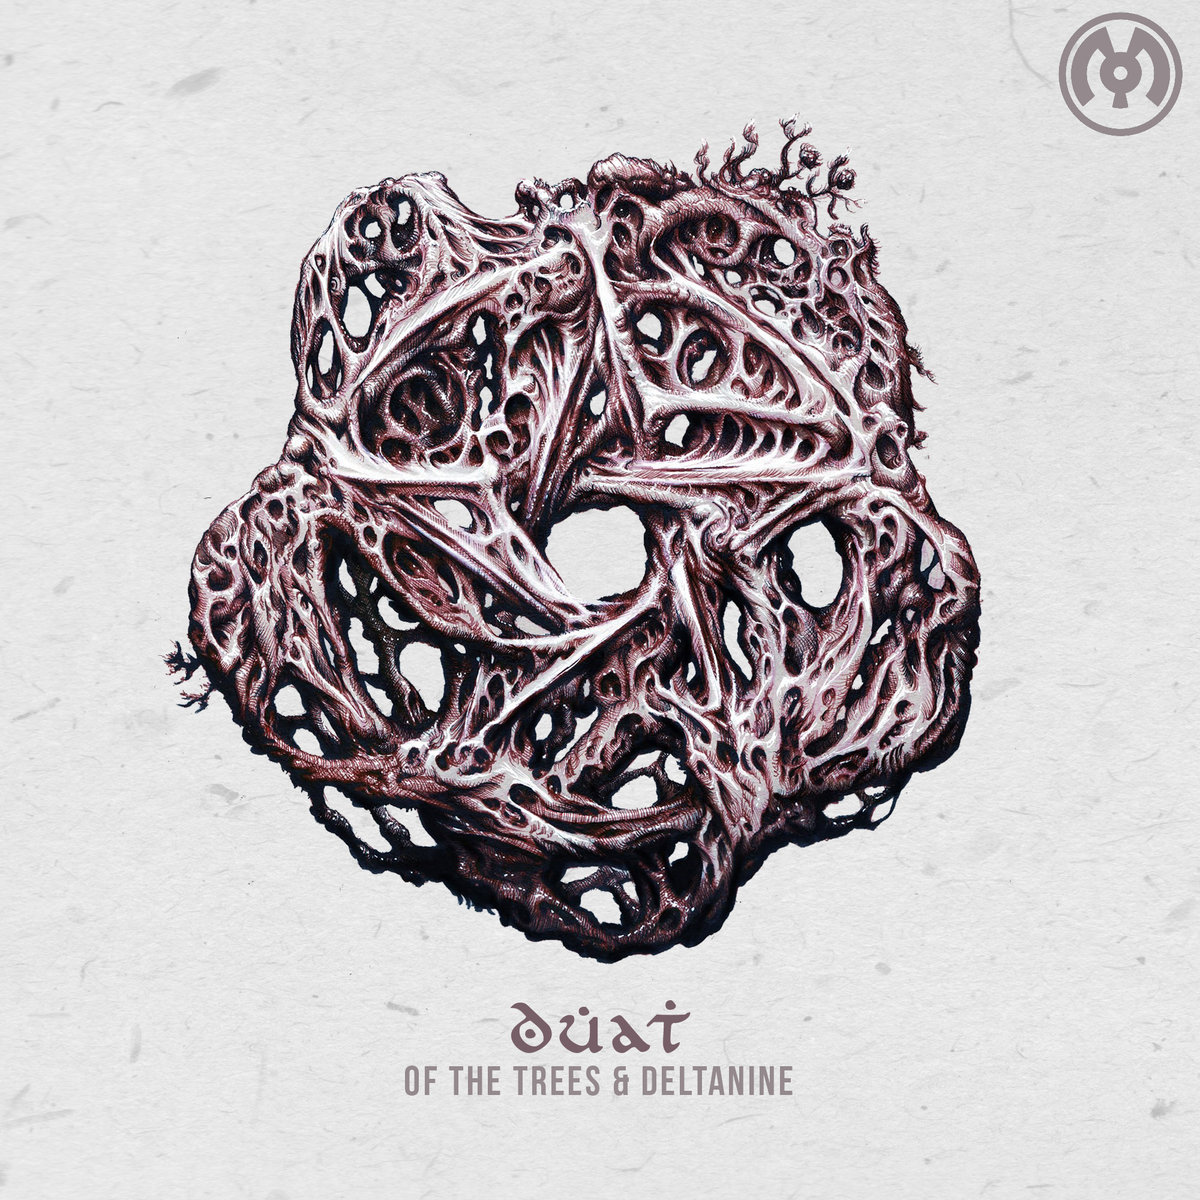 Of the Trees & DELTAnine - Hall of Osiris @ 'Duat' album (electronic, dubstep)